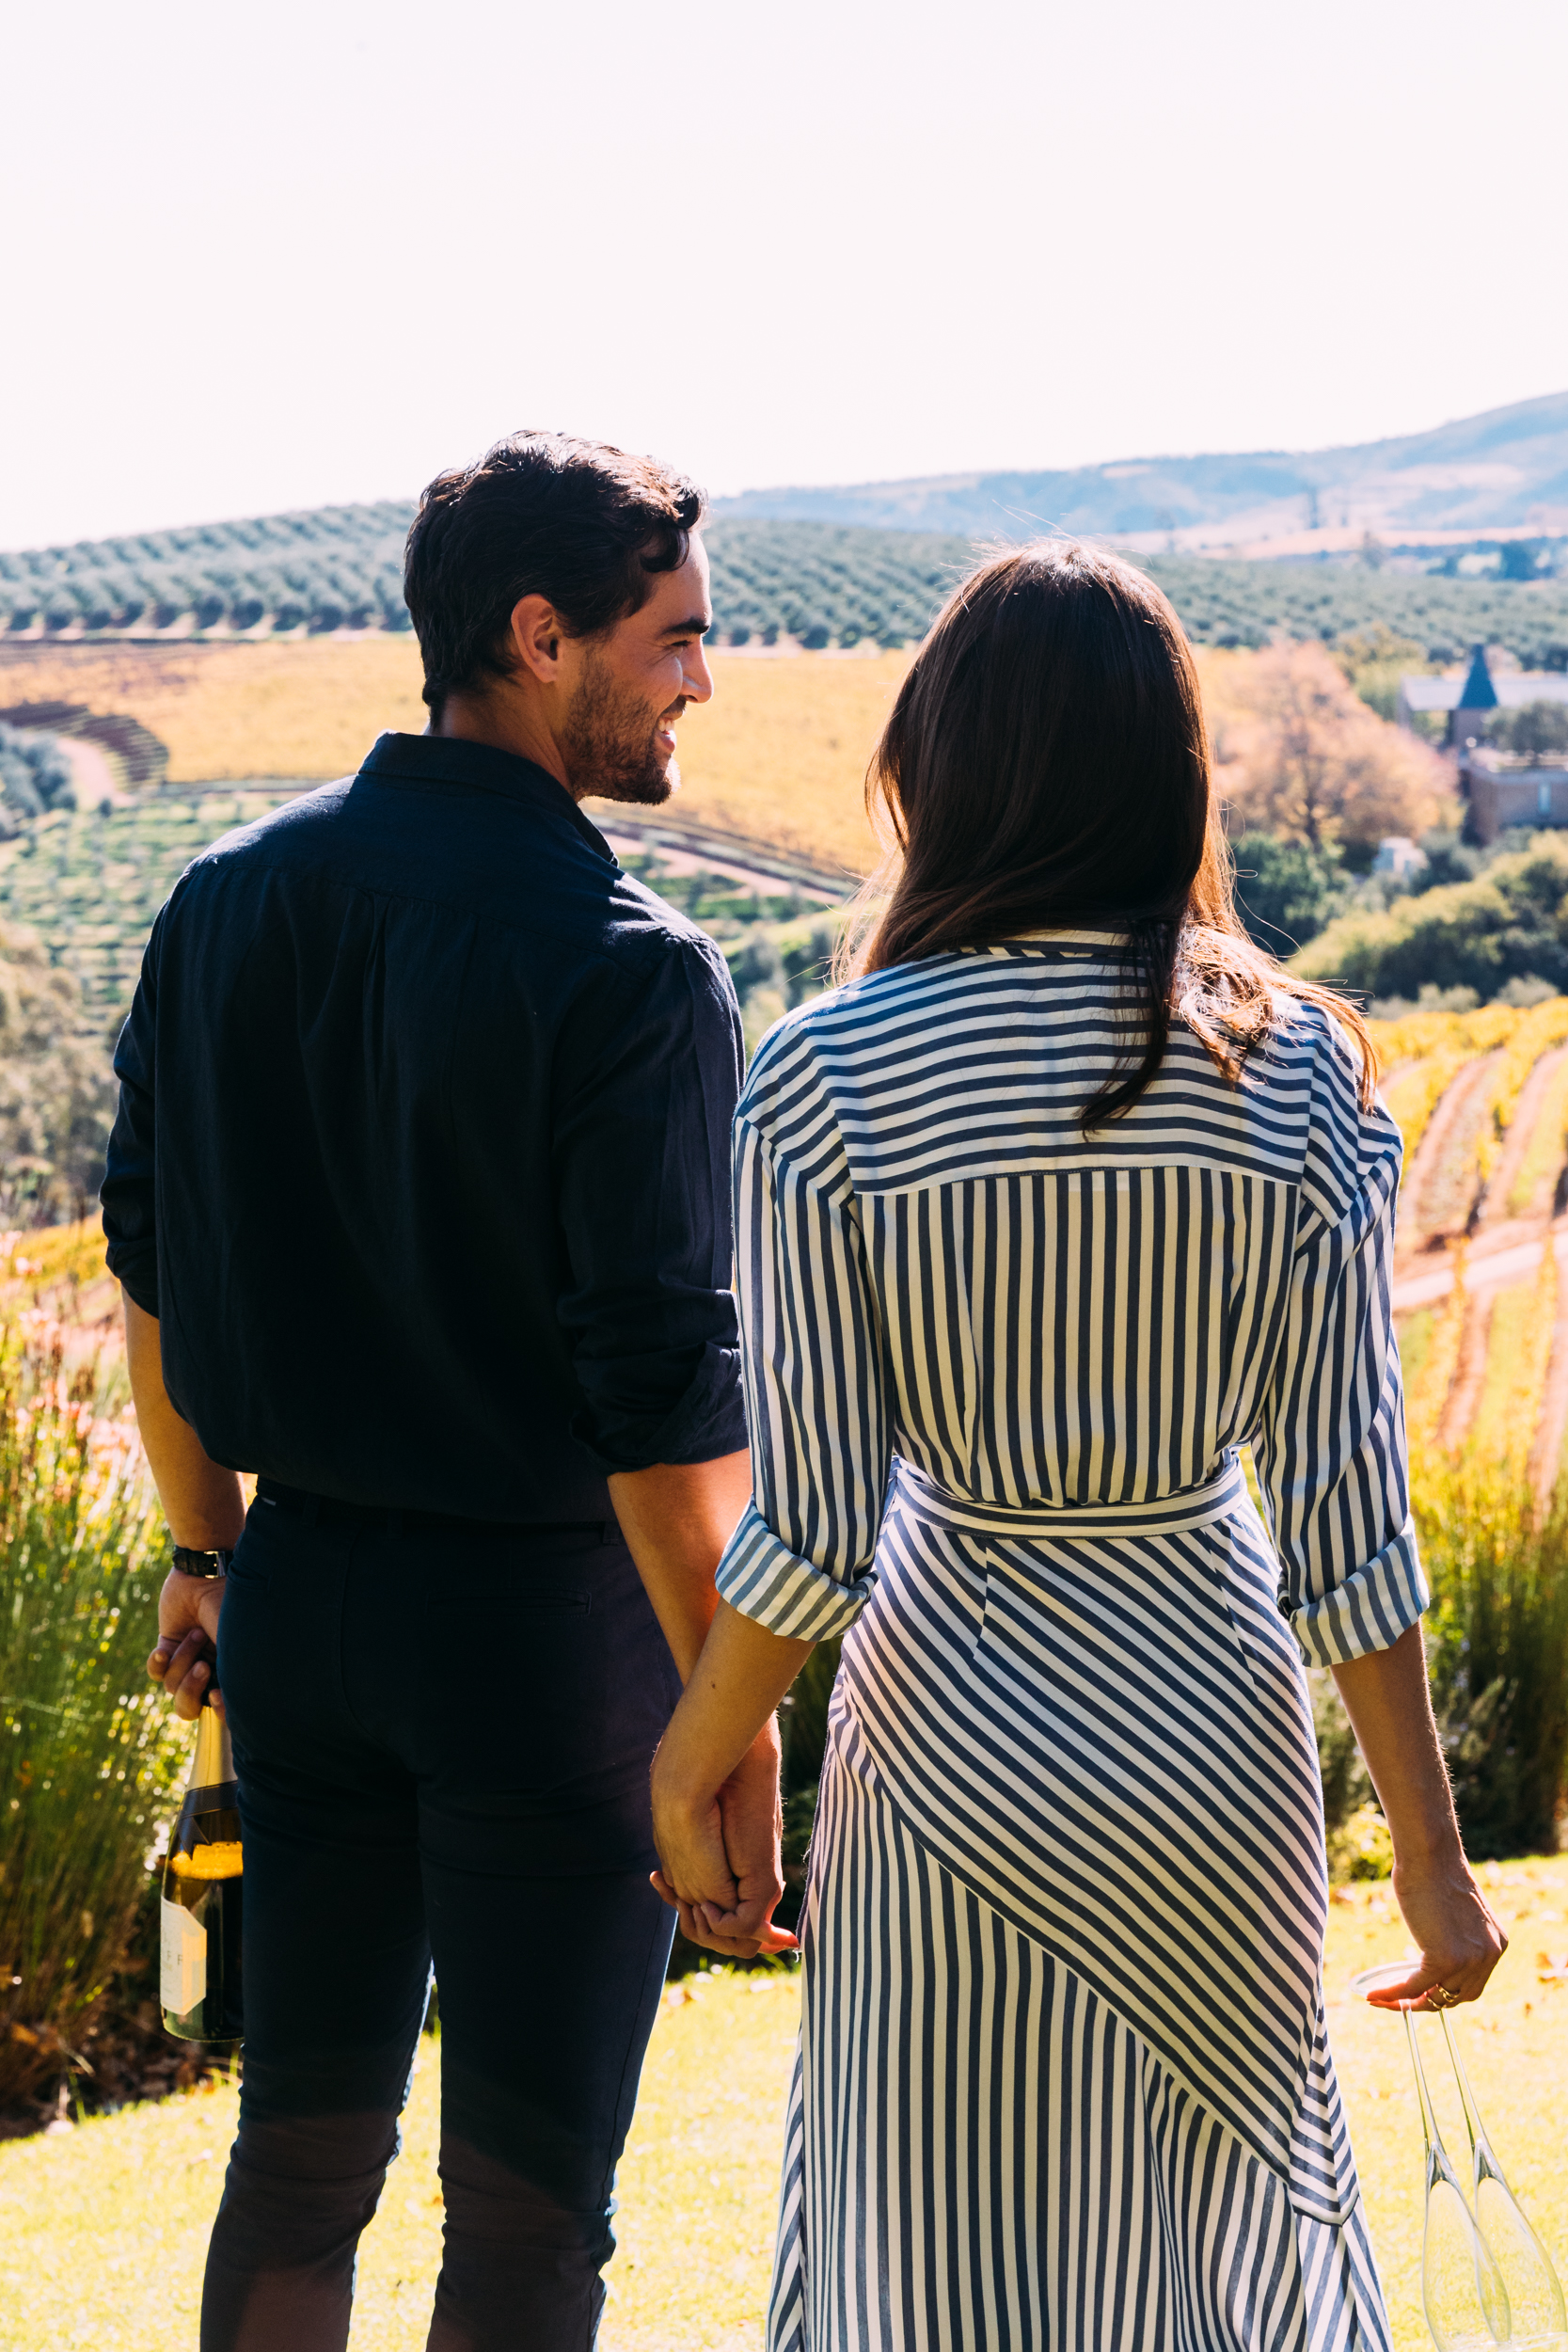 A couple are walking through the landscaped garden admiring the view of the Delaire Graff Estate vineyards